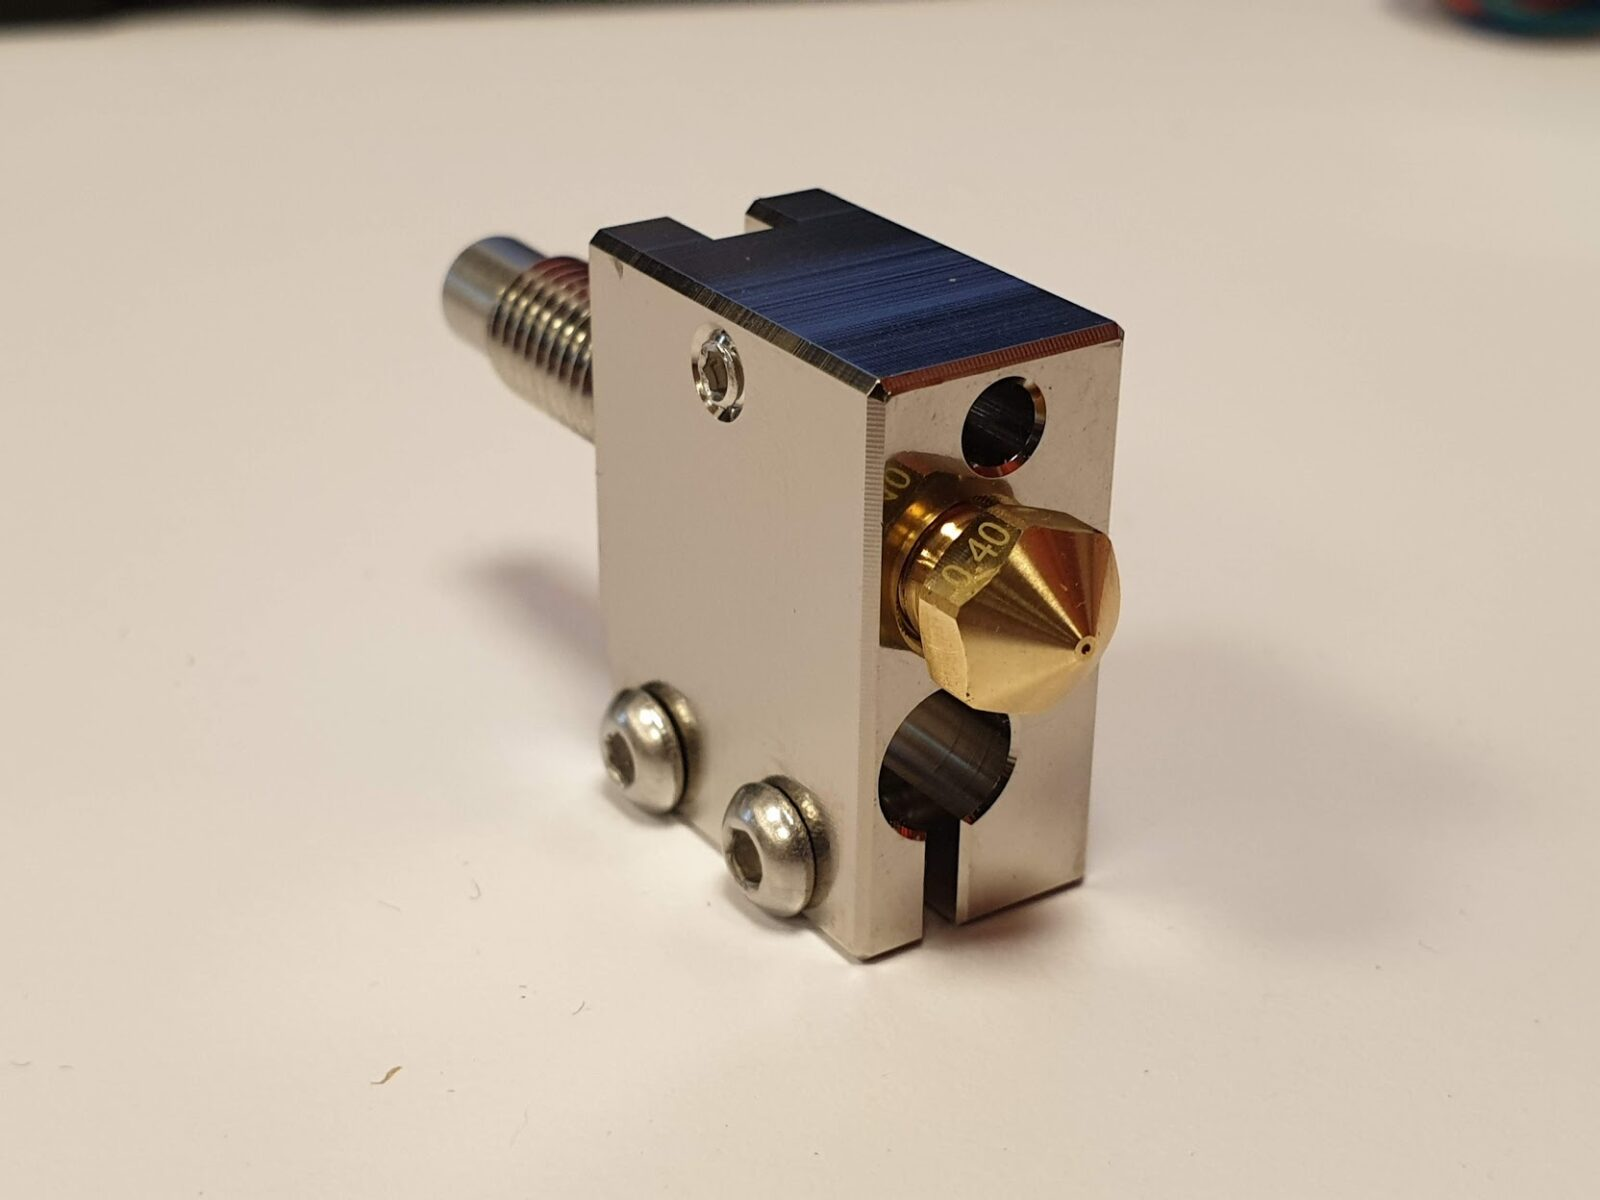 Plated Copper Volcano Heat Block 2 | All-Metal BMG Direct Drive Extruder - My New Favorite